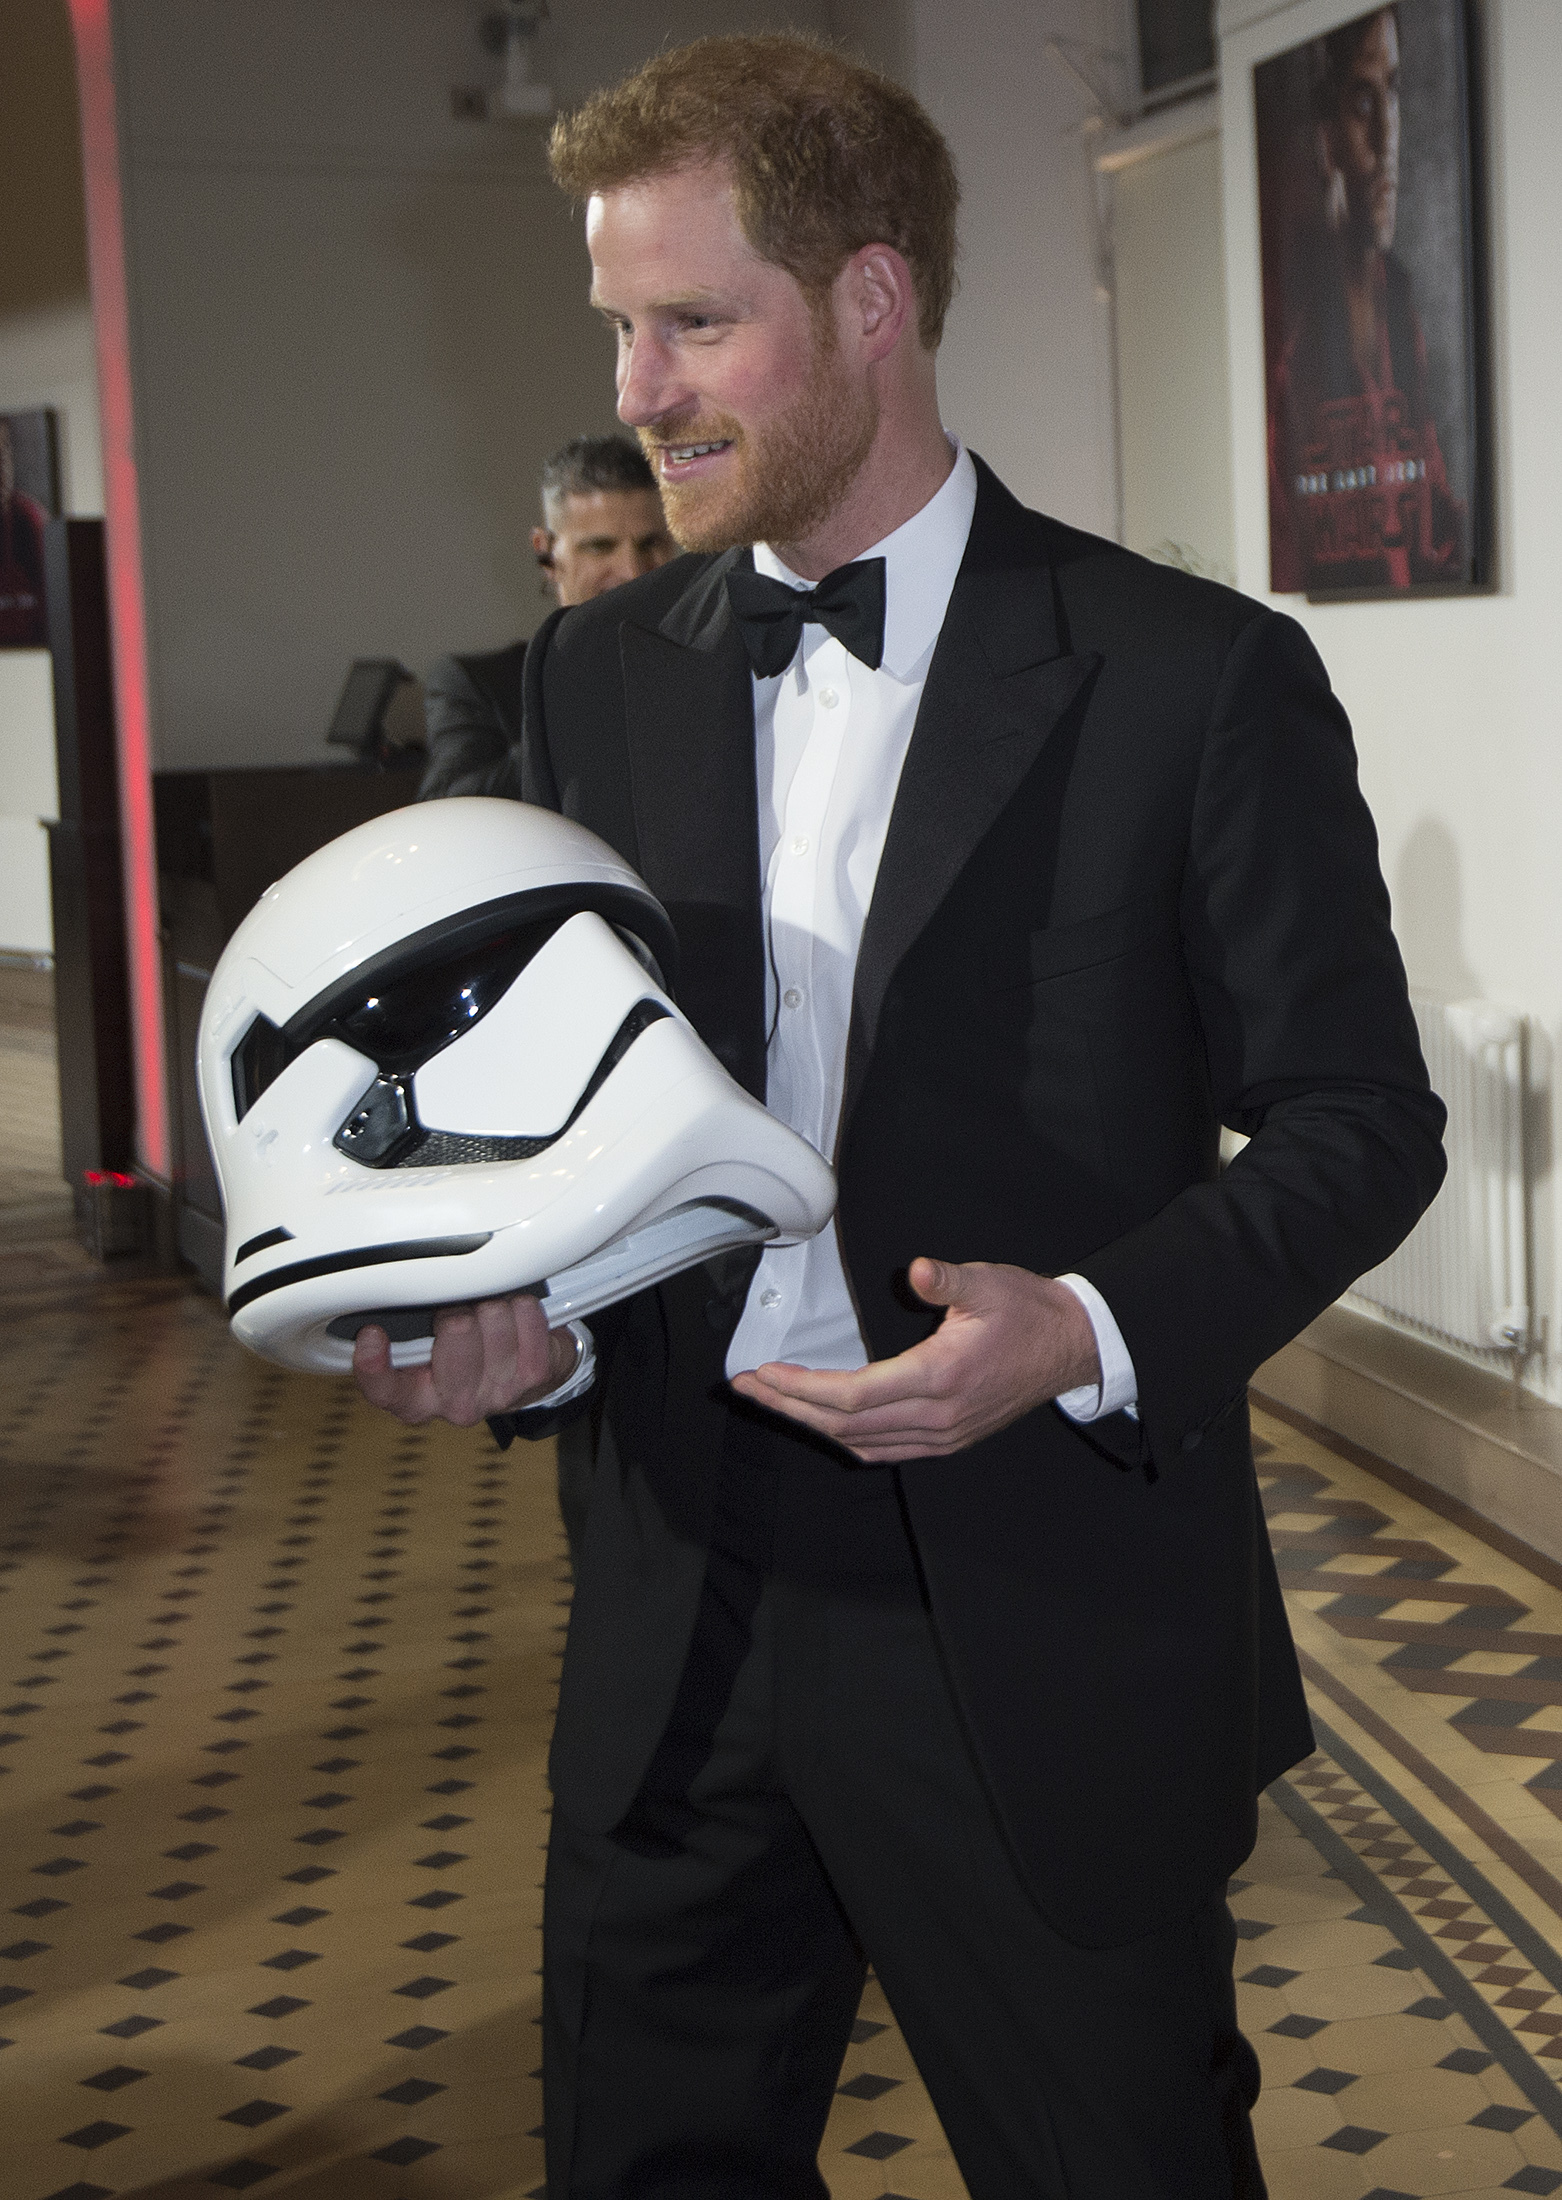 Prince Harry Stormtrooper